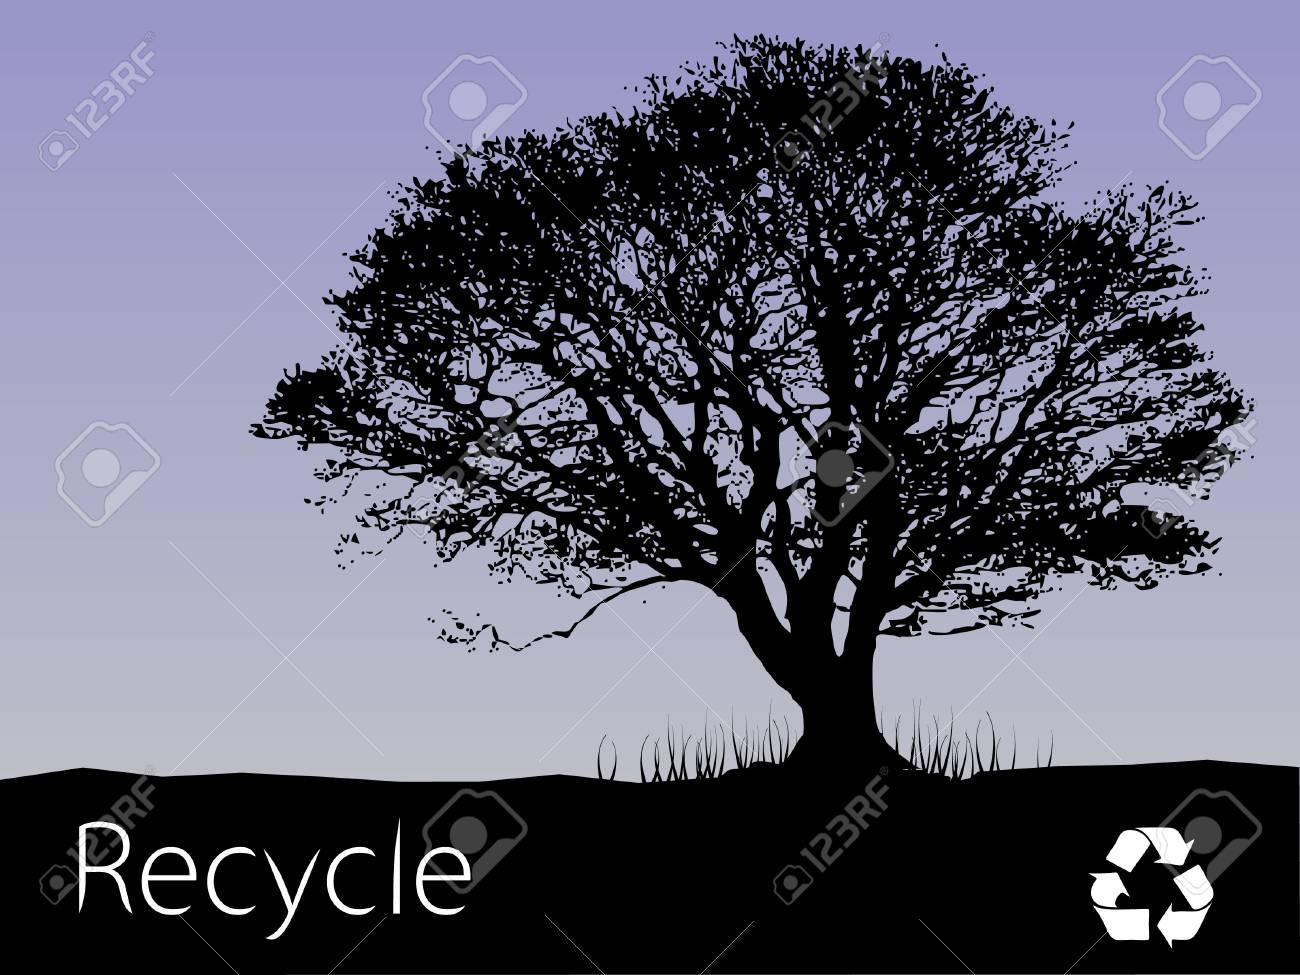 Recycling design. Available in jpeg and eps8 formats. - 5548829